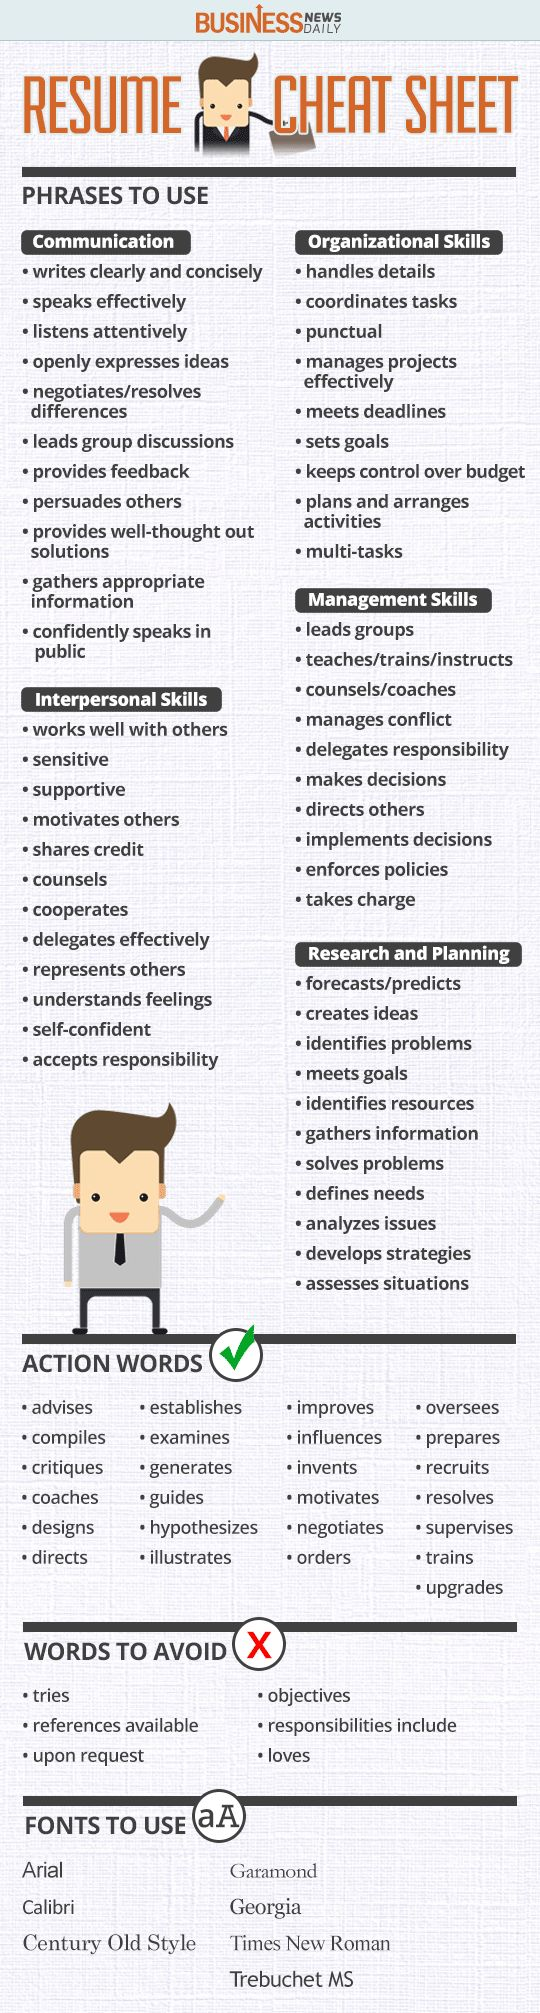 Opposenewapstandardsus  Inspiring  Ideas About Resume On Pinterest  Cv Format Resume Cv And  With Inspiring Resume Cheat Sheet Infographic Andrews Almost Done With A Complete Unit On Employment Which With Divine Resume Template For Students Also Medical Device Sales Resume In Addition Hostess Job Description Resume And Software Engineer Resume Sample As Well As Pastor Resume Sample Additionally Catering Manager Resume From Pinterestcom With Opposenewapstandardsus  Inspiring  Ideas About Resume On Pinterest  Cv Format Resume Cv And  With Divine Resume Cheat Sheet Infographic Andrews Almost Done With A Complete Unit On Employment Which And Inspiring Resume Template For Students Also Medical Device Sales Resume In Addition Hostess Job Description Resume From Pinterestcom